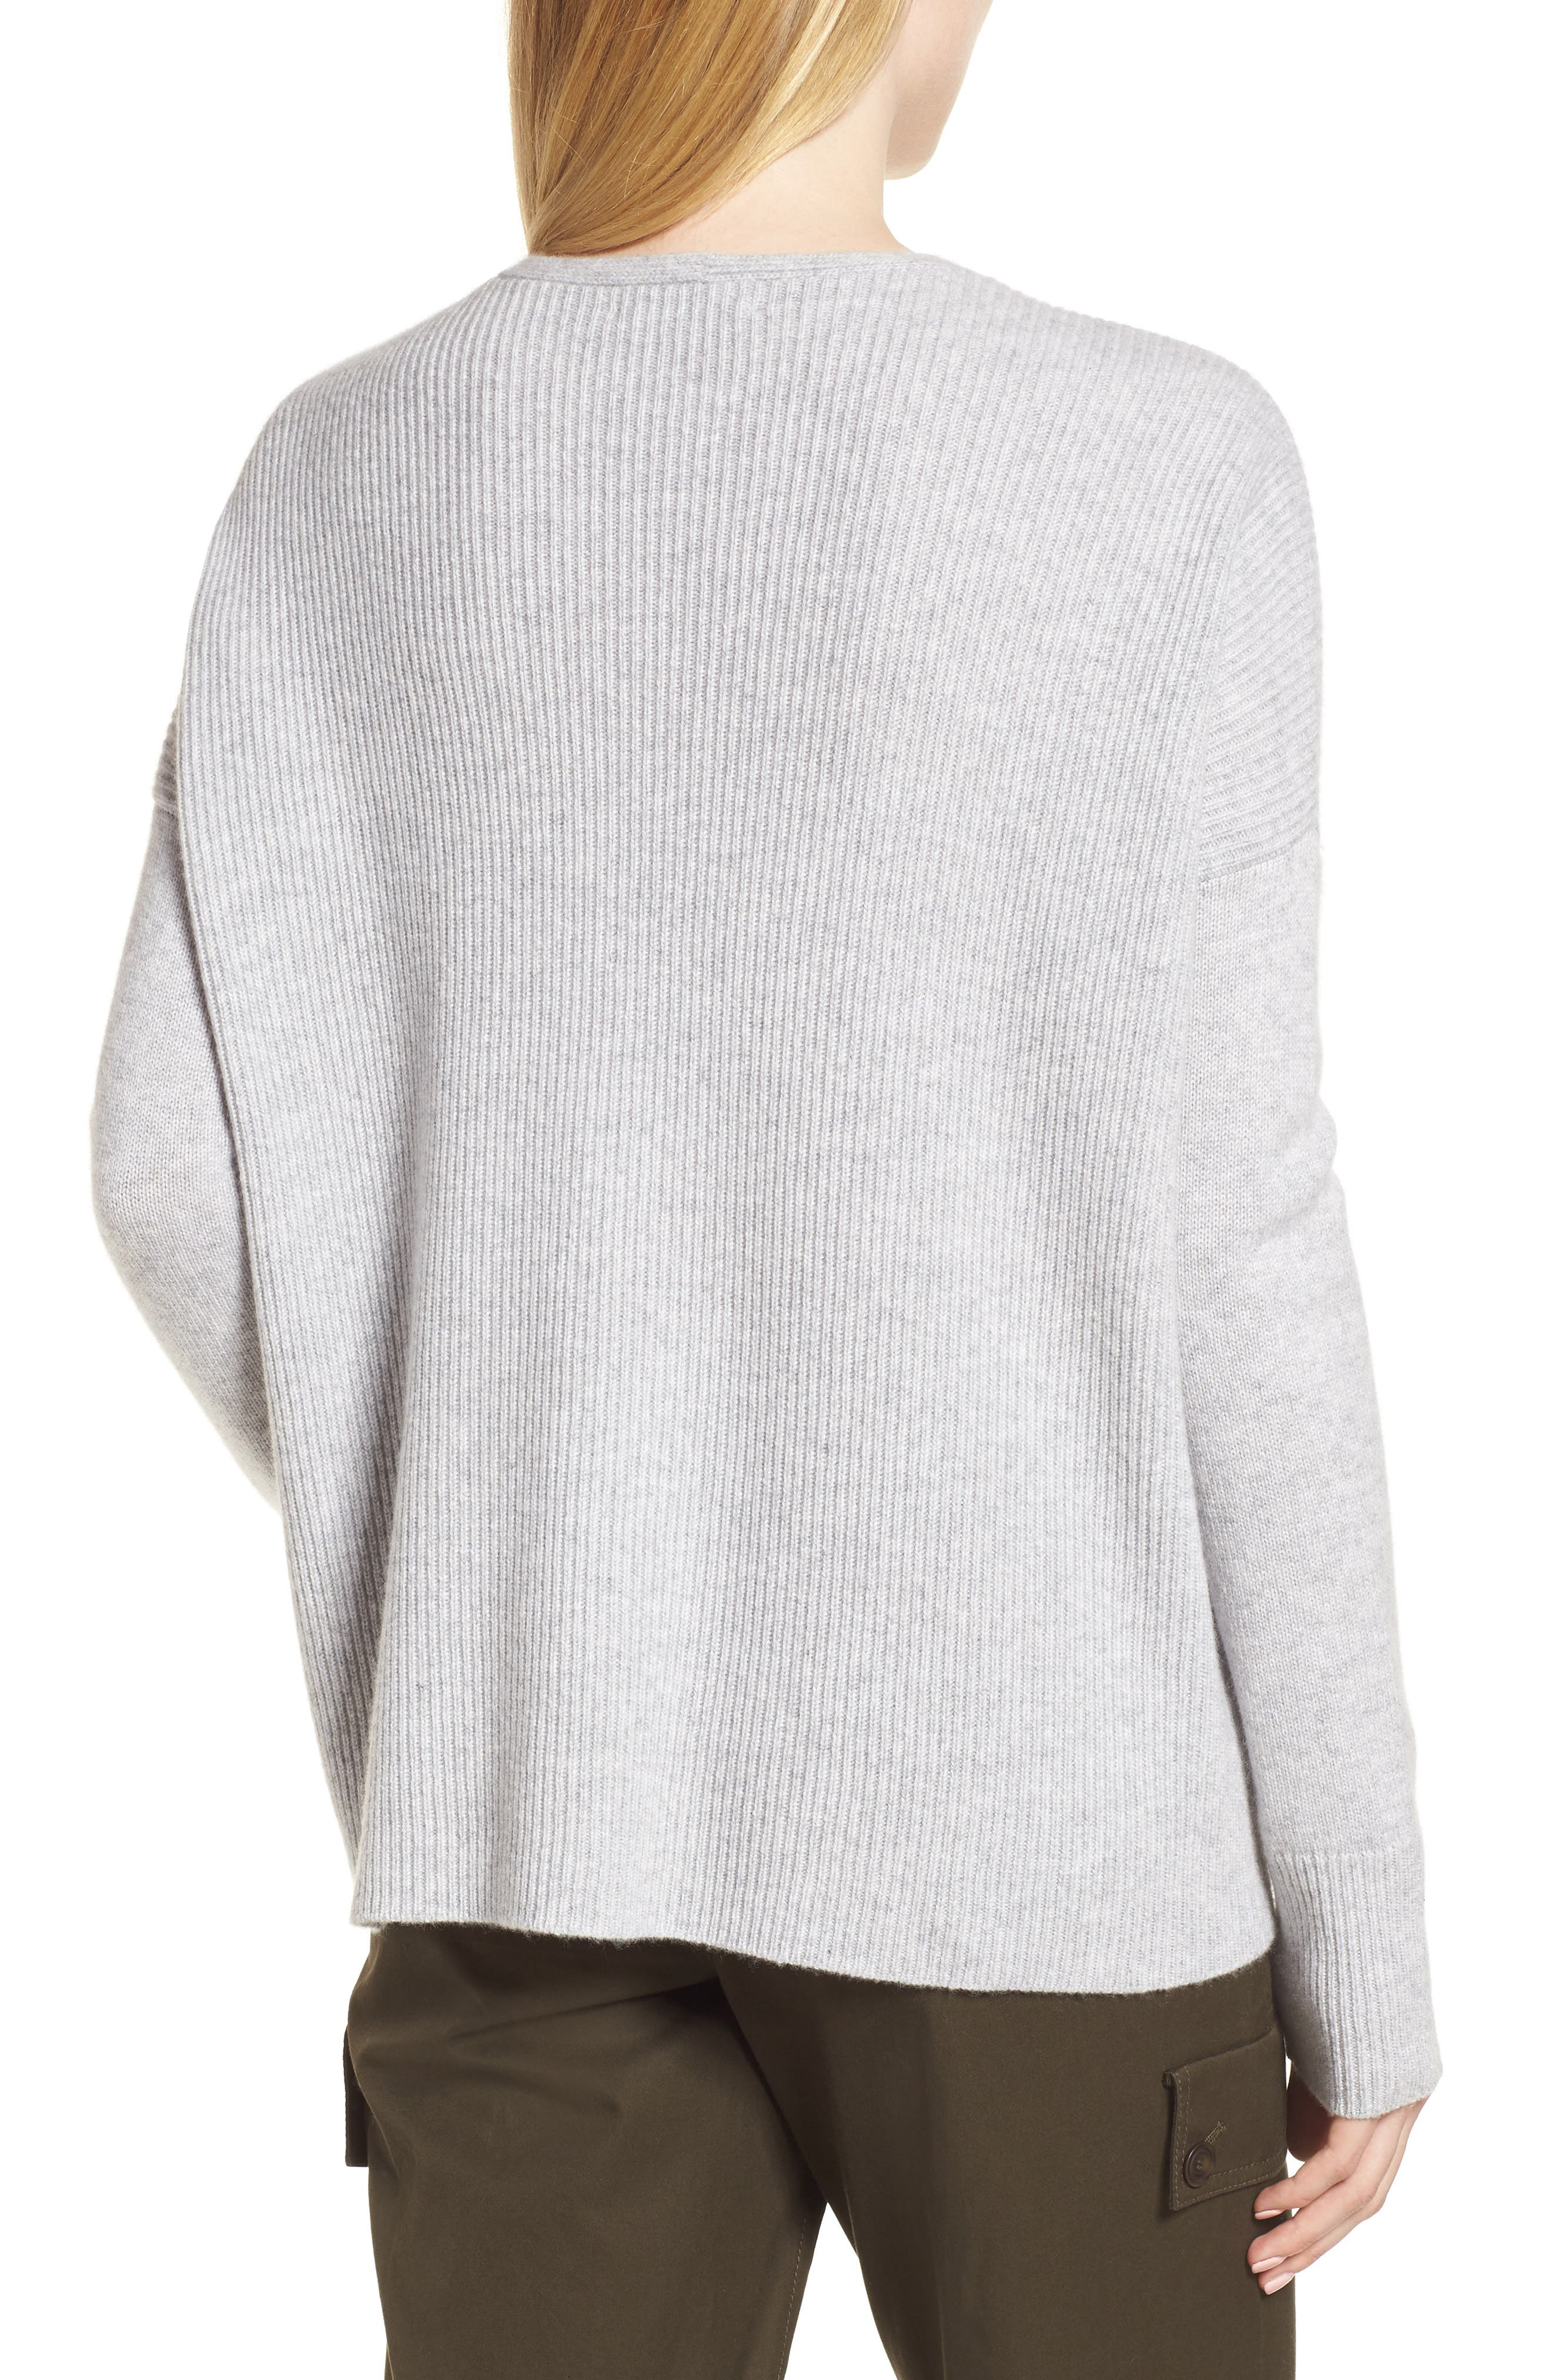 Cashmere Soft Ribbed Pullover Sweater,                             Alternate thumbnail 2, color,                             050